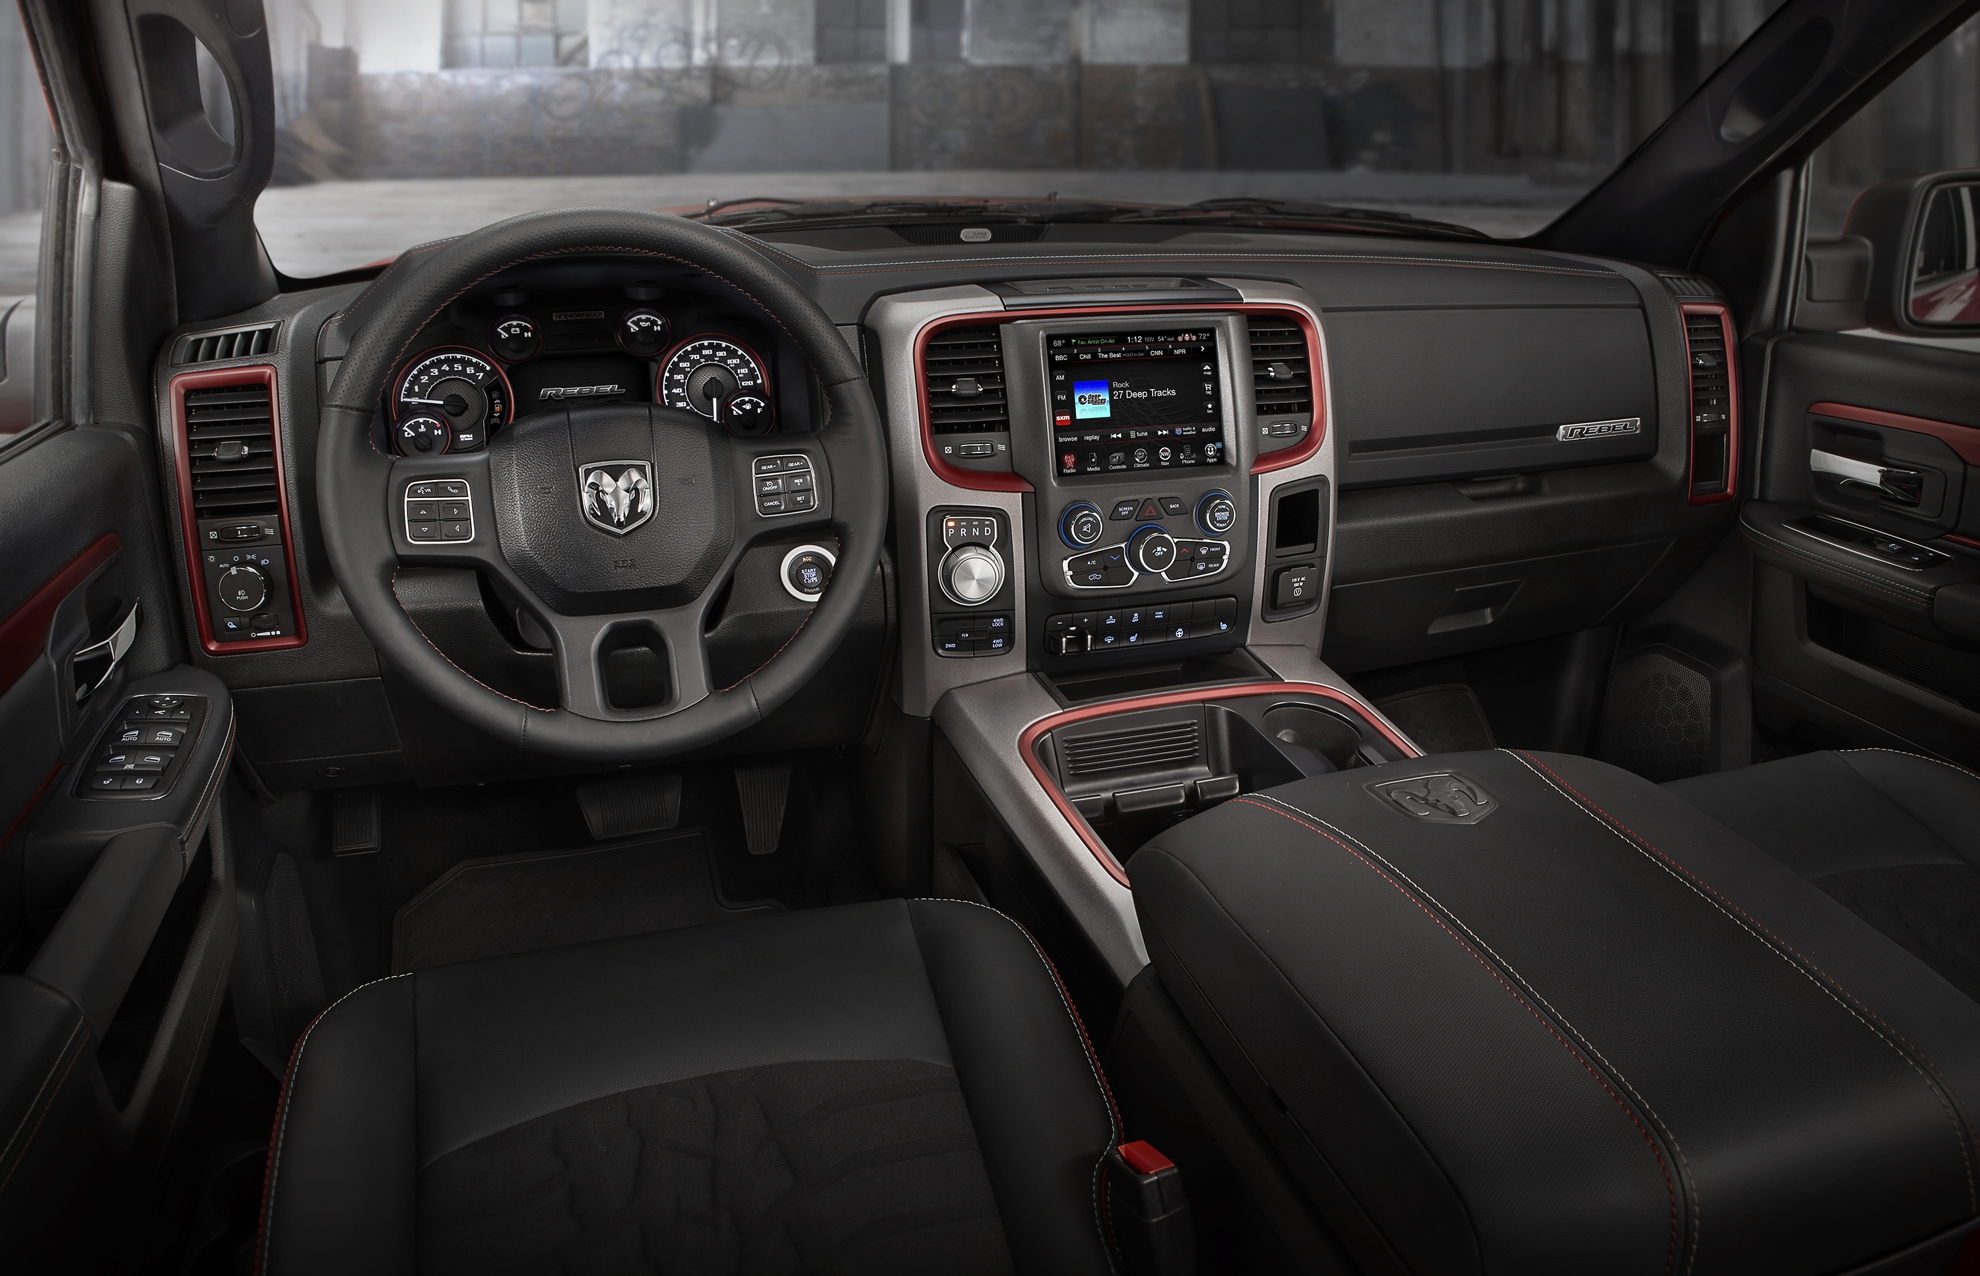 2015 dodge ram 1500. Black Bedroom Furniture Sets. Home Design Ideas